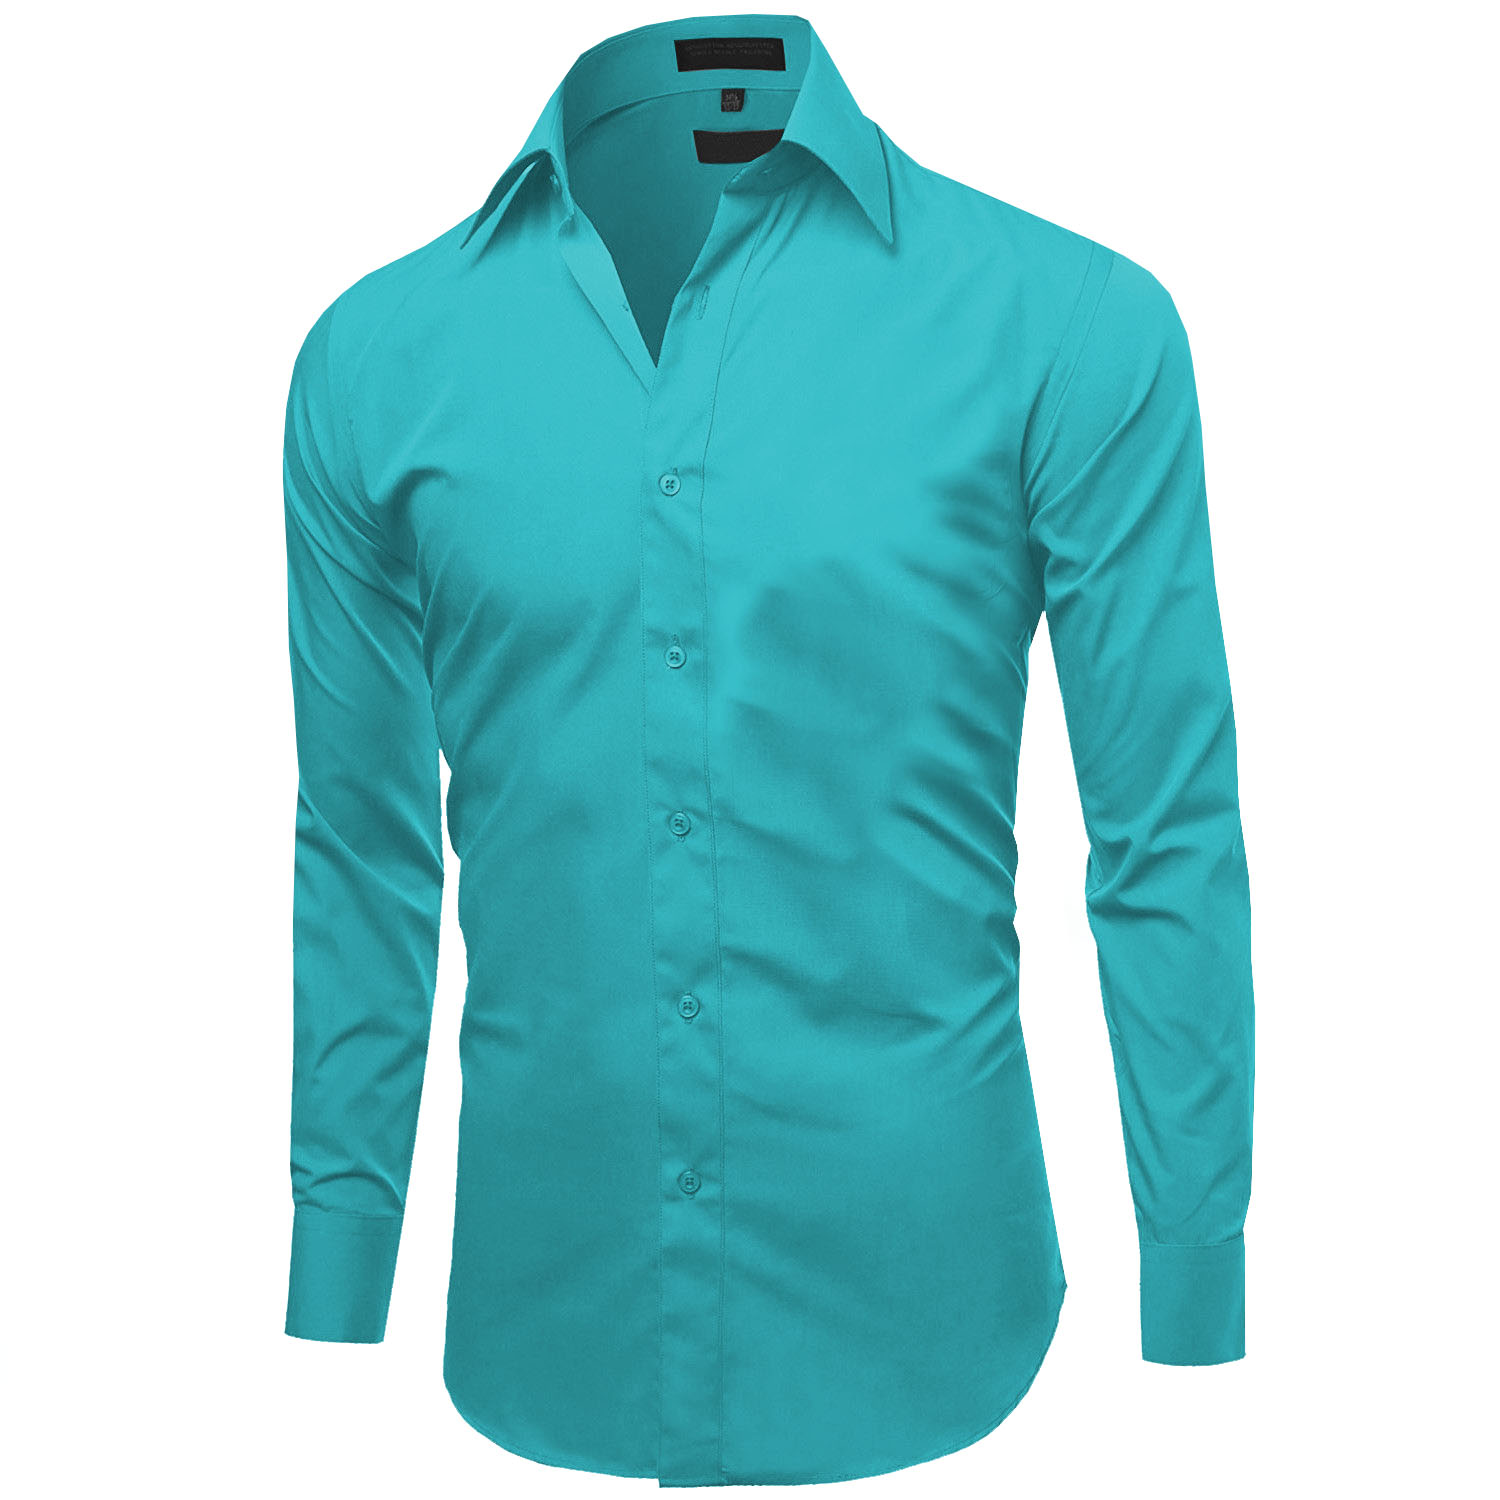 Omega-Italy-Men-039-s-Premium-Slim-Fit-Button-Up-Long-Sleeve-Solid-Color-Dress-Shirt thumbnail 88